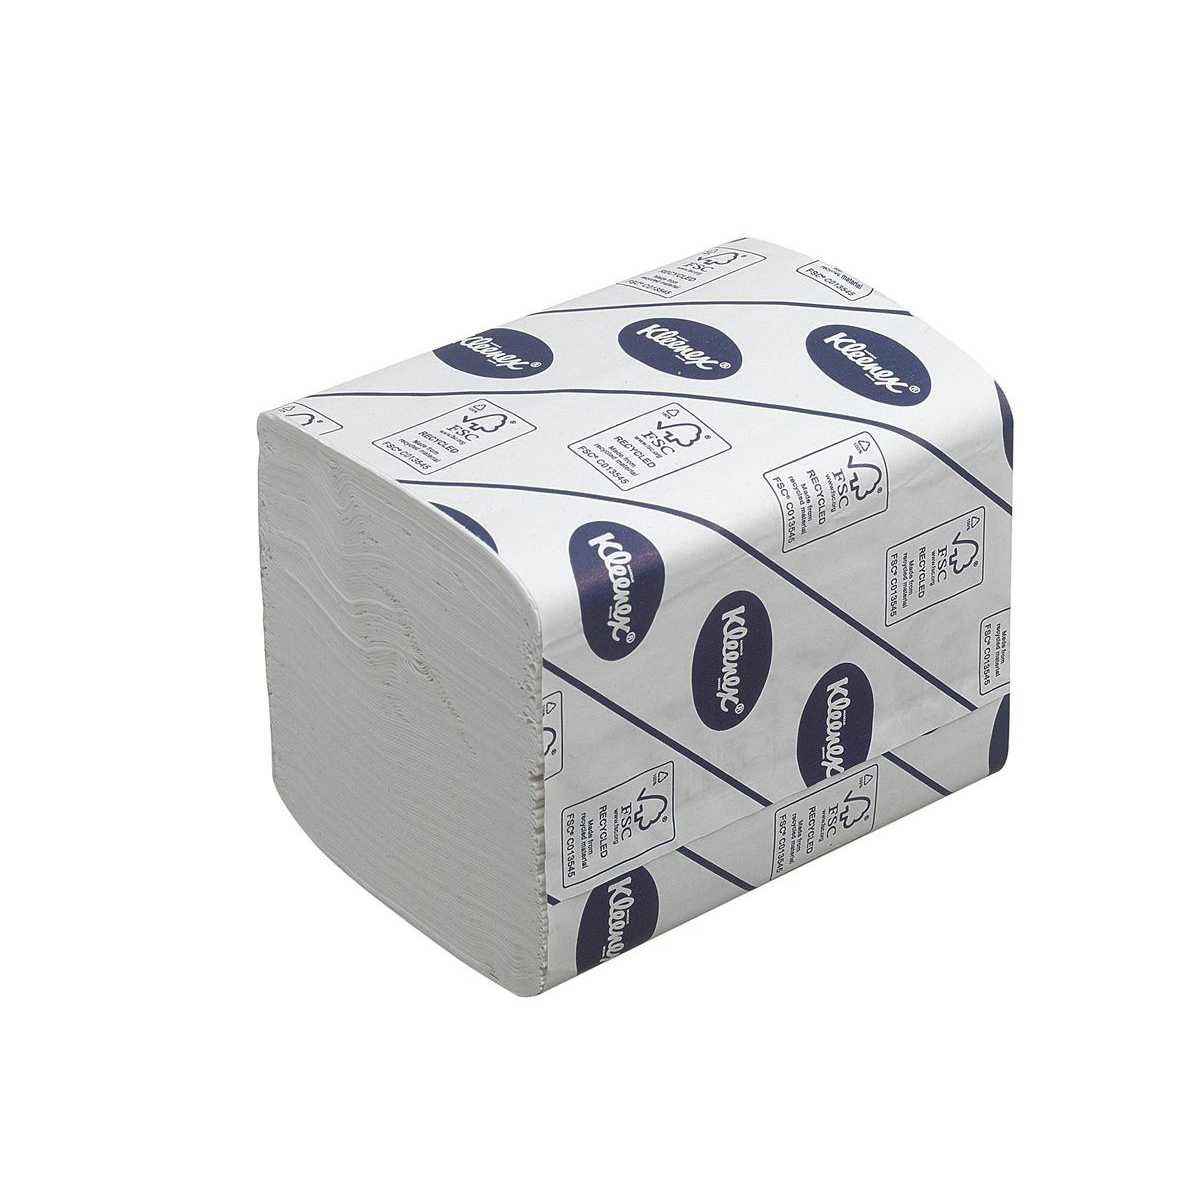 Kleenex 27 Toilet Tissue Bulk Pack Folded 260 Sheets per sleeve 2-ply White Ref 4477 [Pack 27]